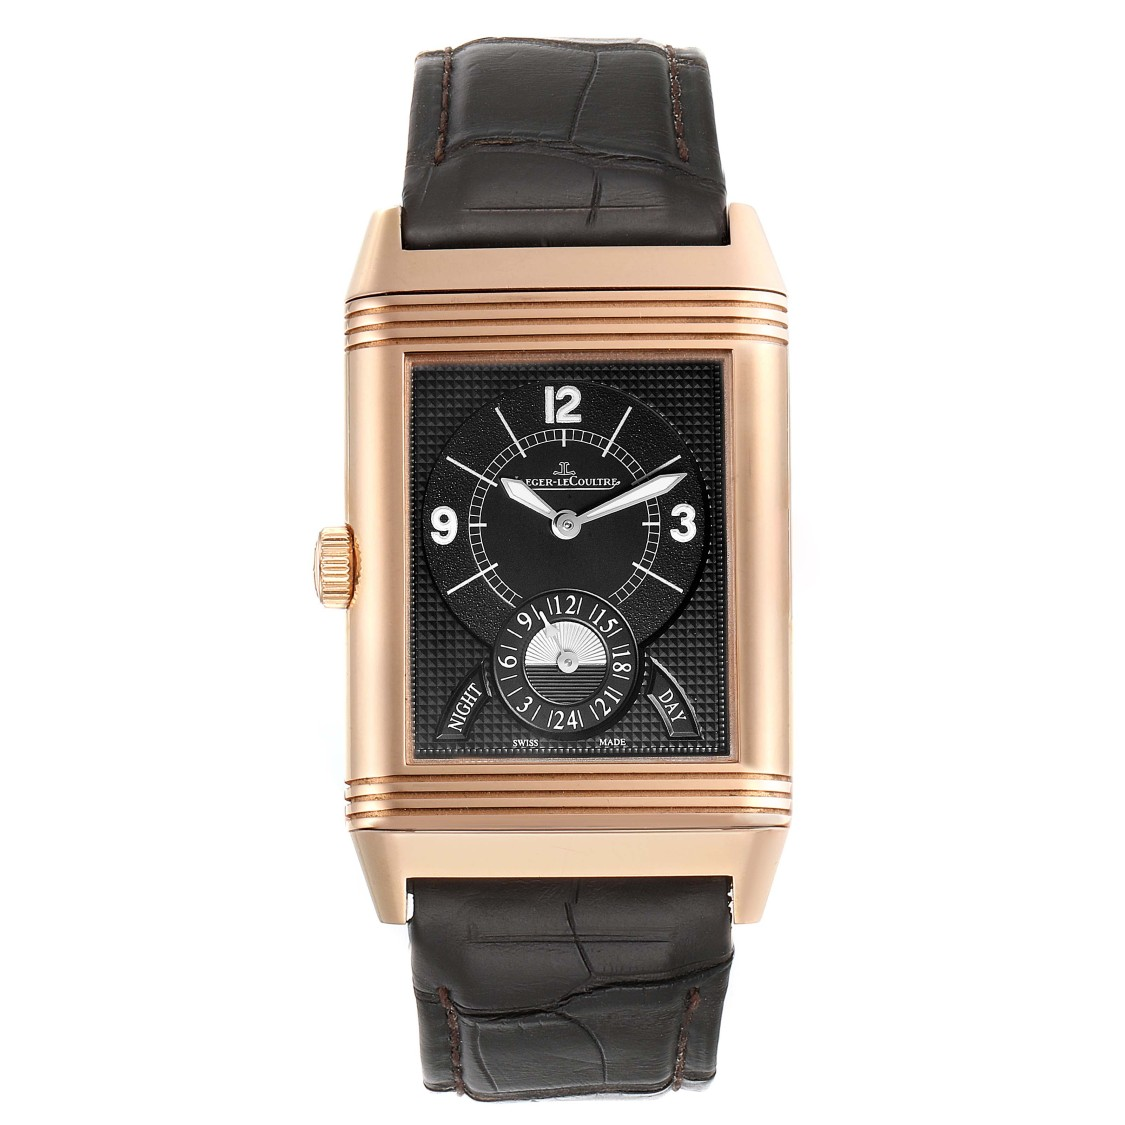 Jaeger-lecoultre Grande Reverso Duodate Rose Gold Watch 273.2.85 Q3742521 In Not Applicable